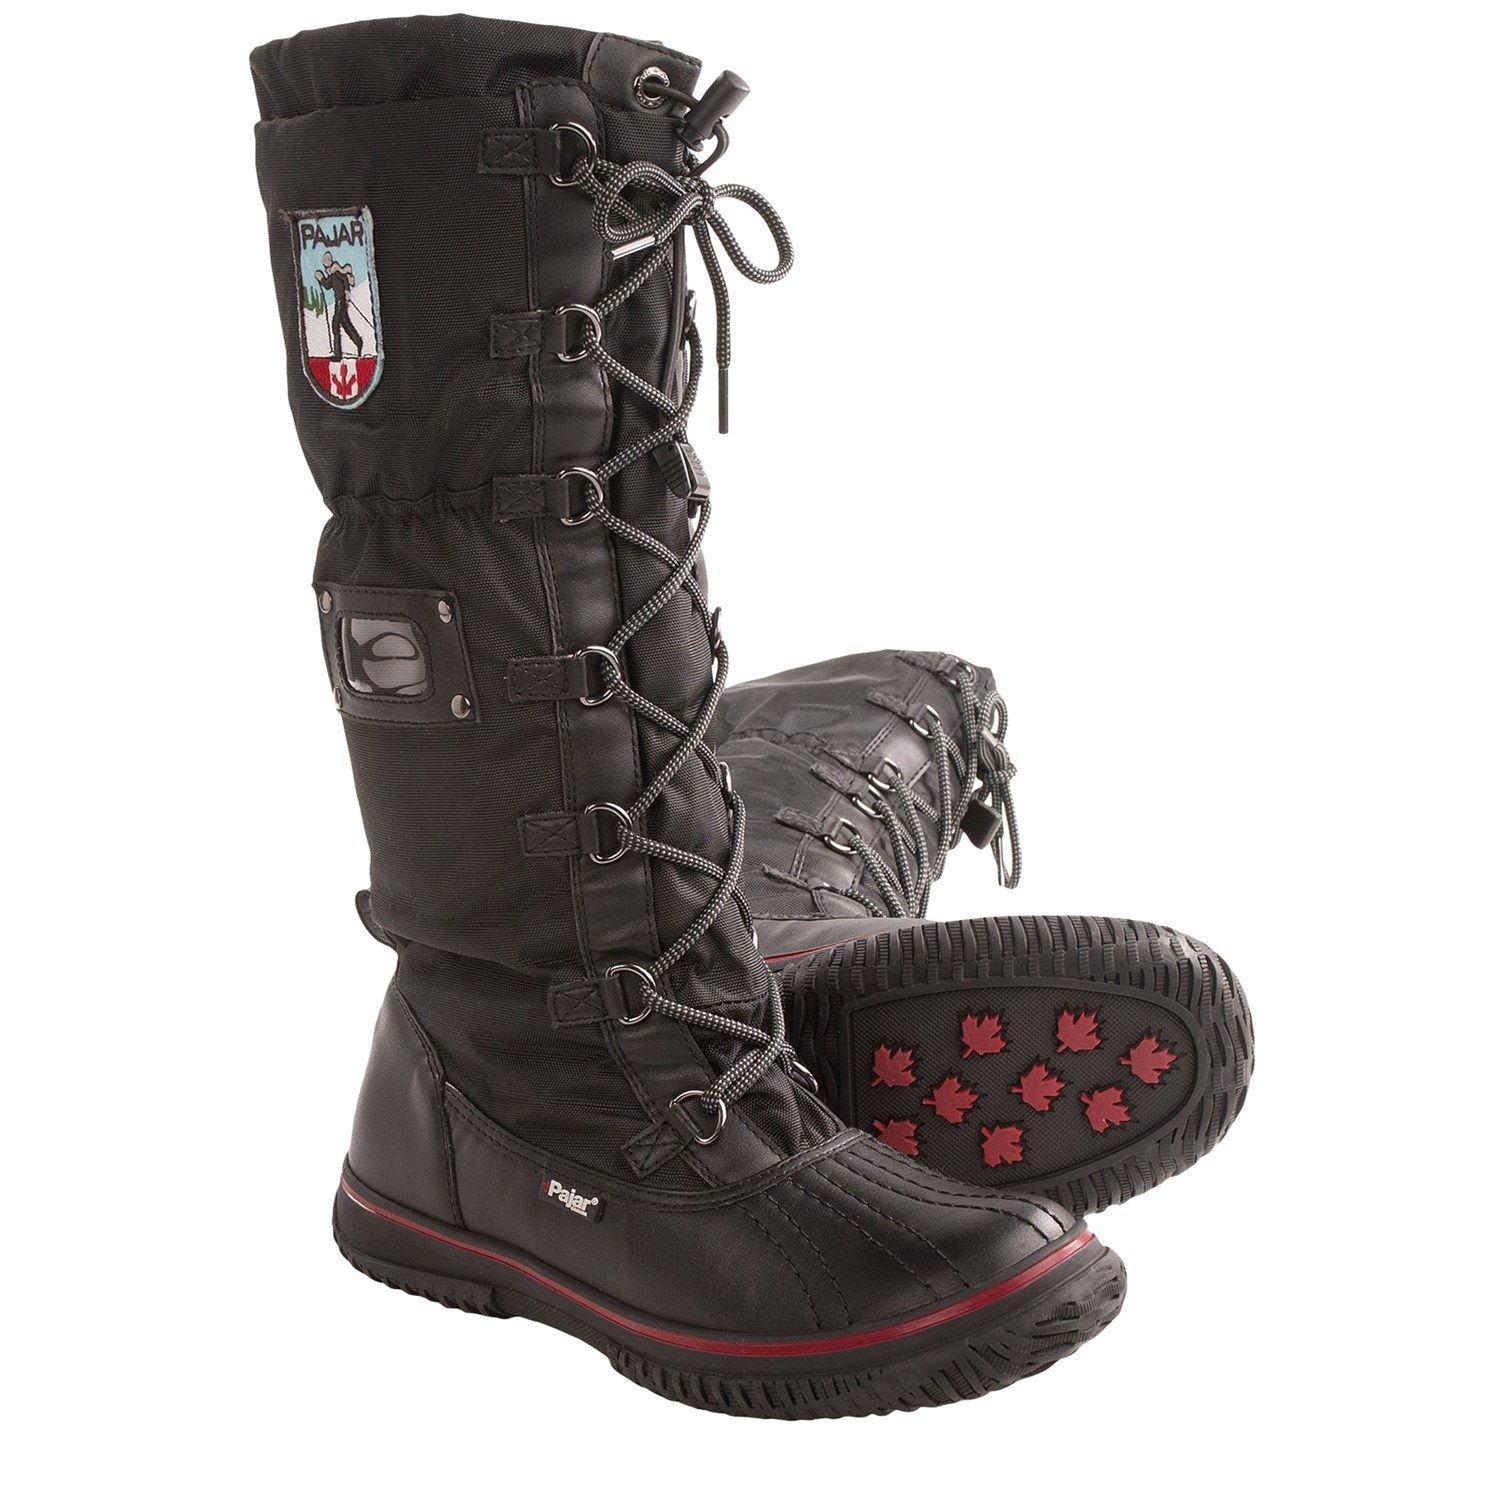 Pajar Grip High Winter Snow Boots (For Women)